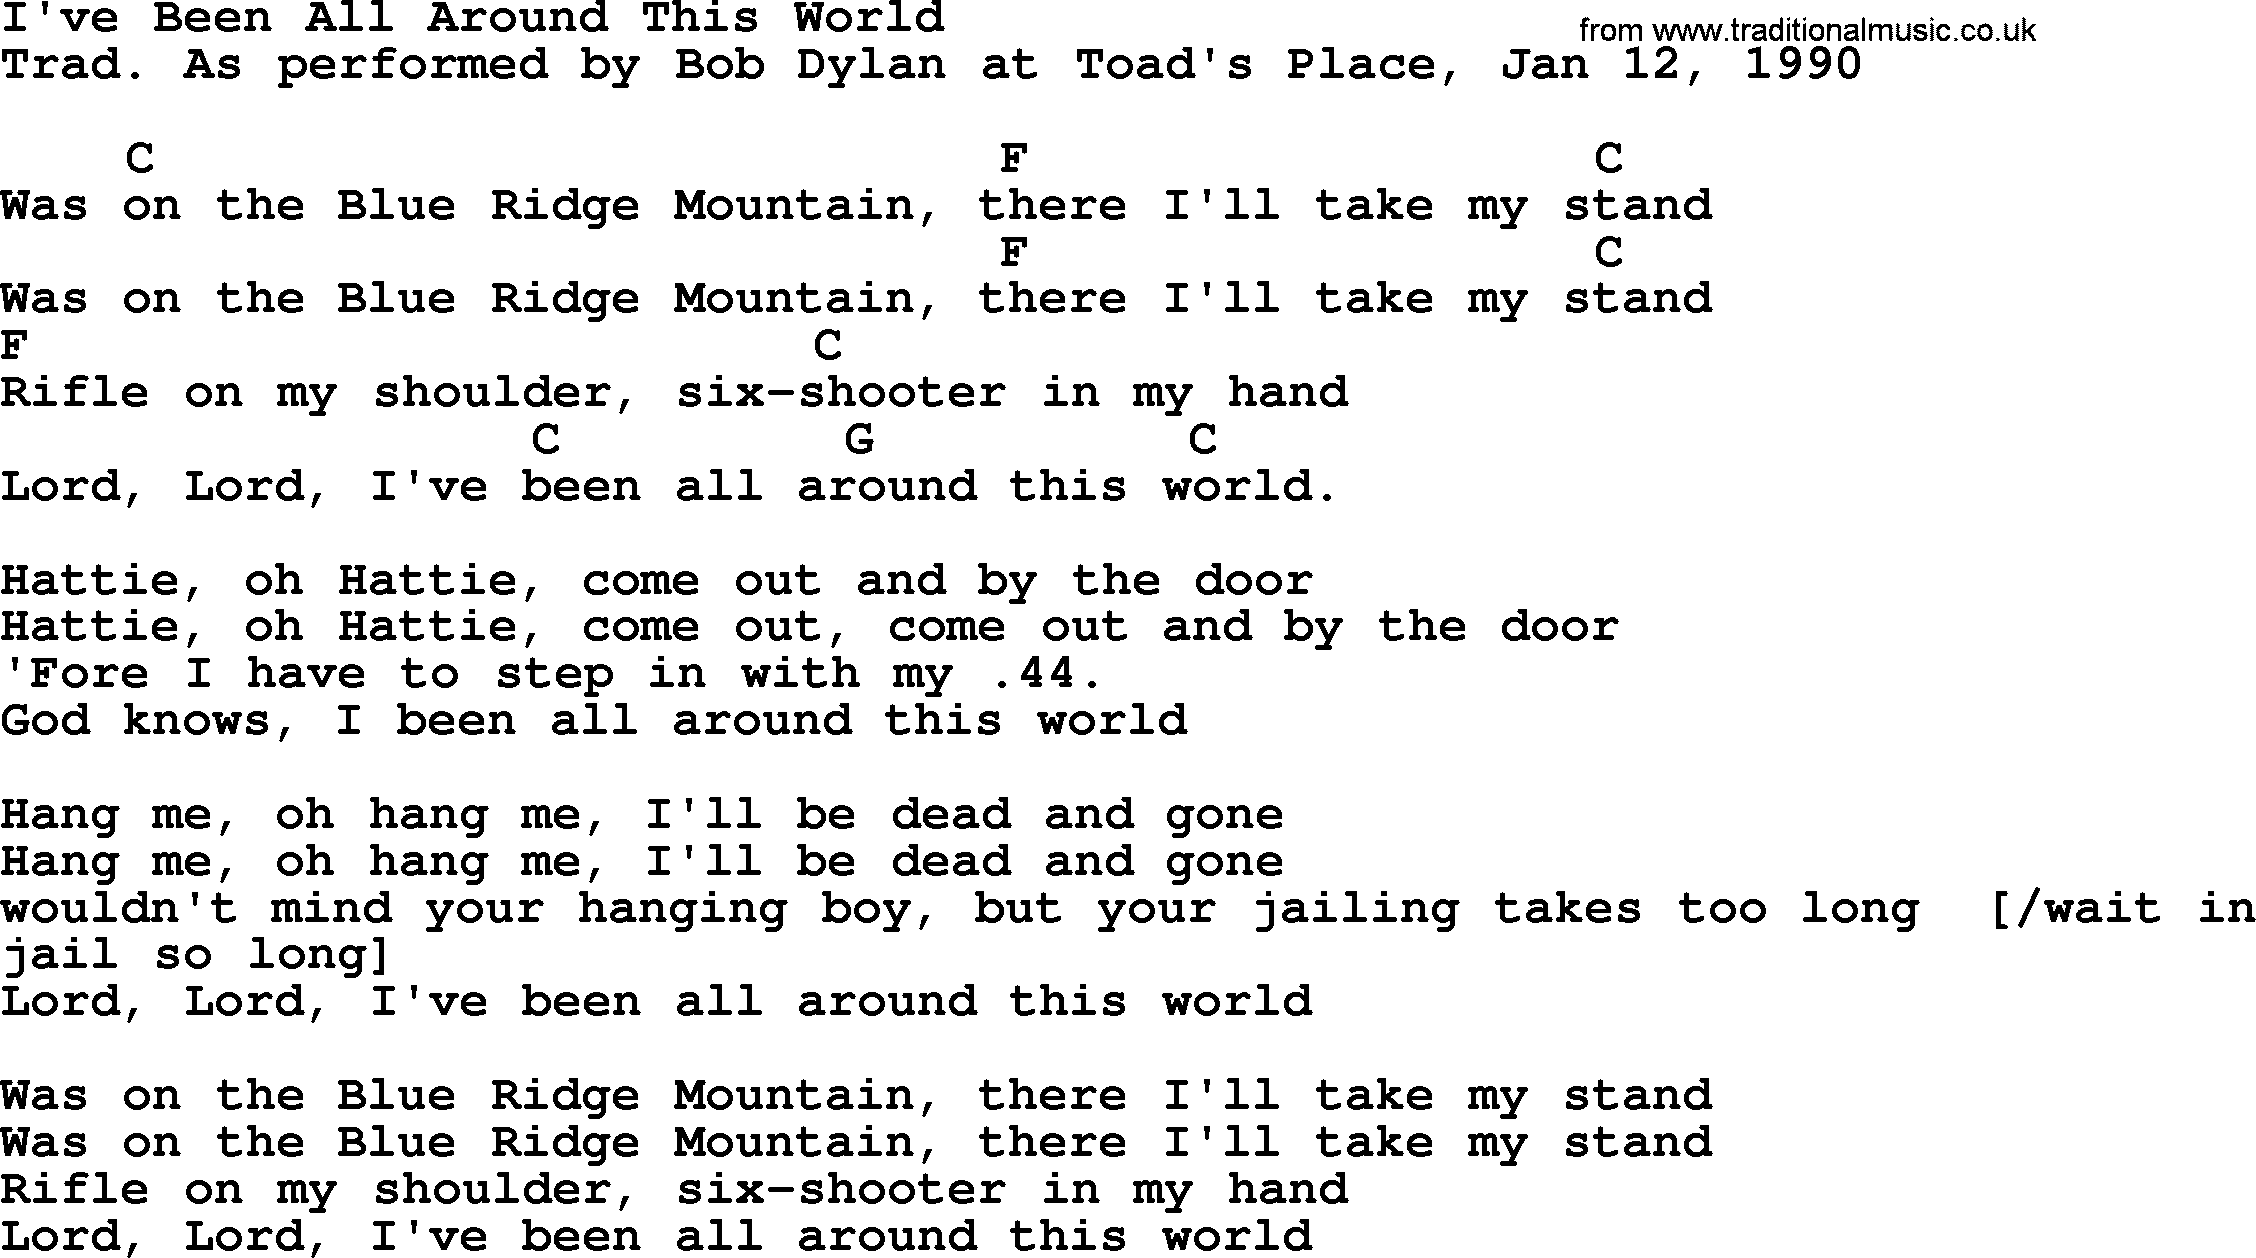 Bob Dylan Song Ive Been All Around This World Lyrics And Chords